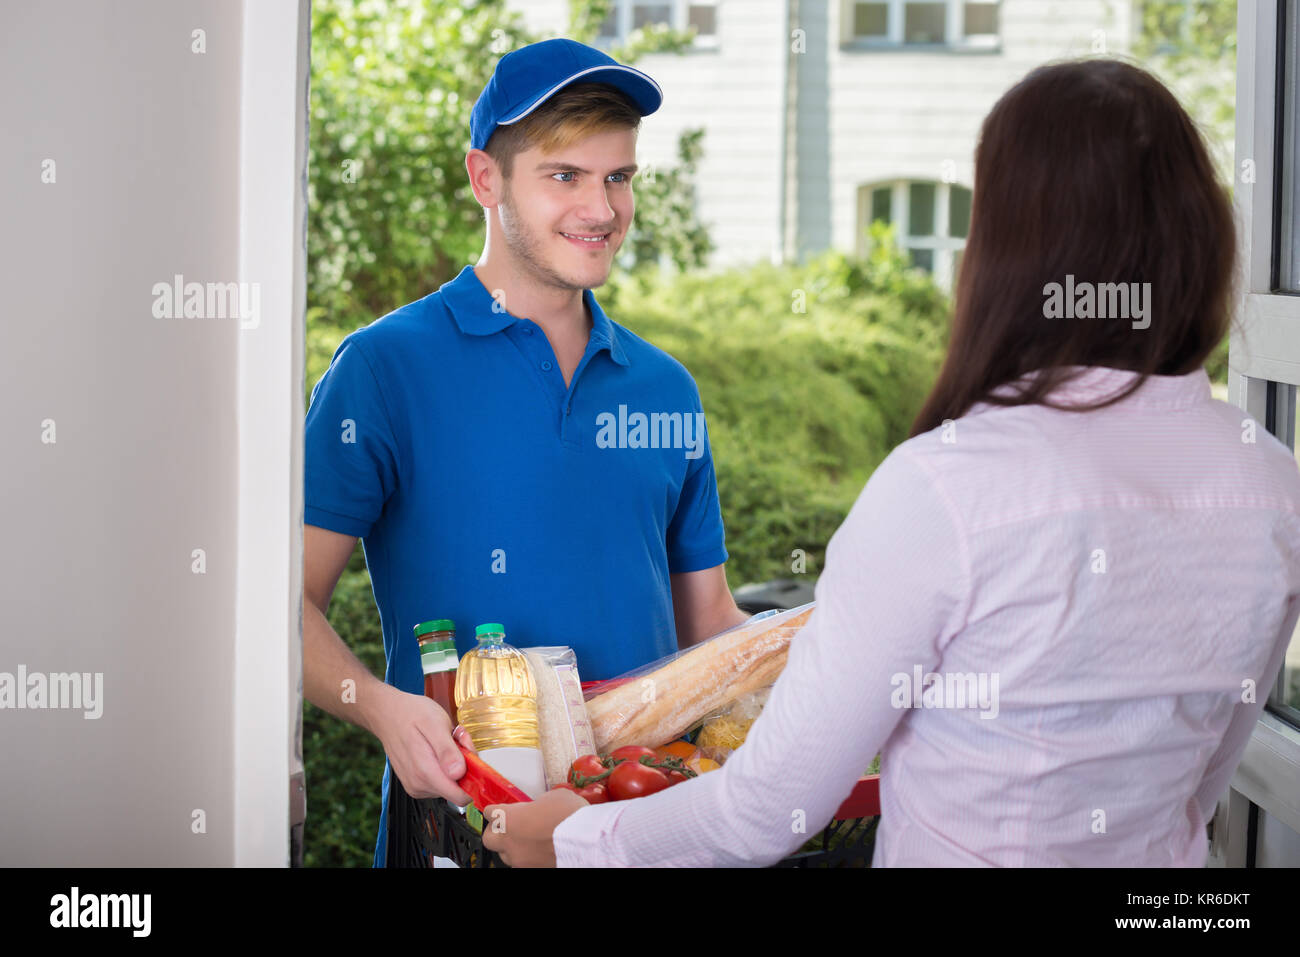 Smiling Young Woman Delivers Groceries - Stock Image